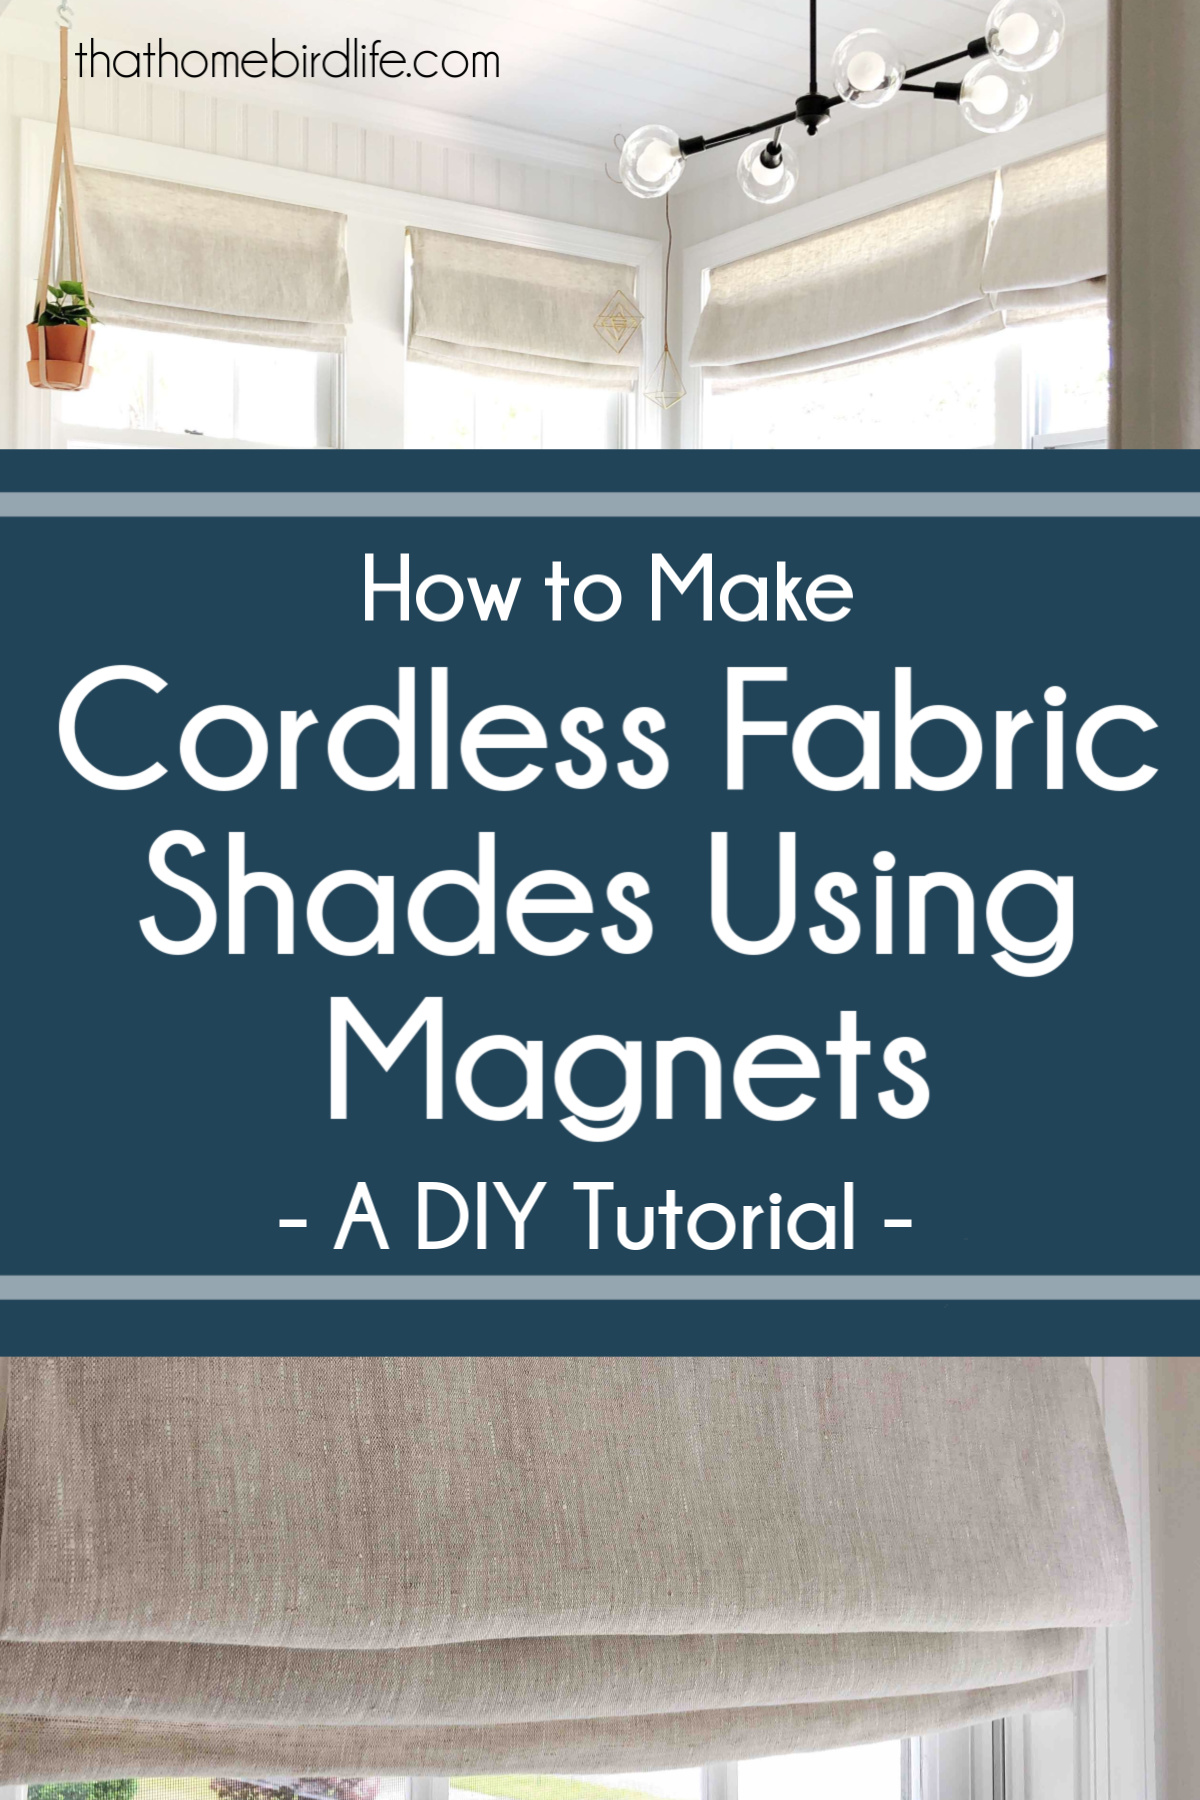 How to Make Cordless Fabric Shades Using Magnets